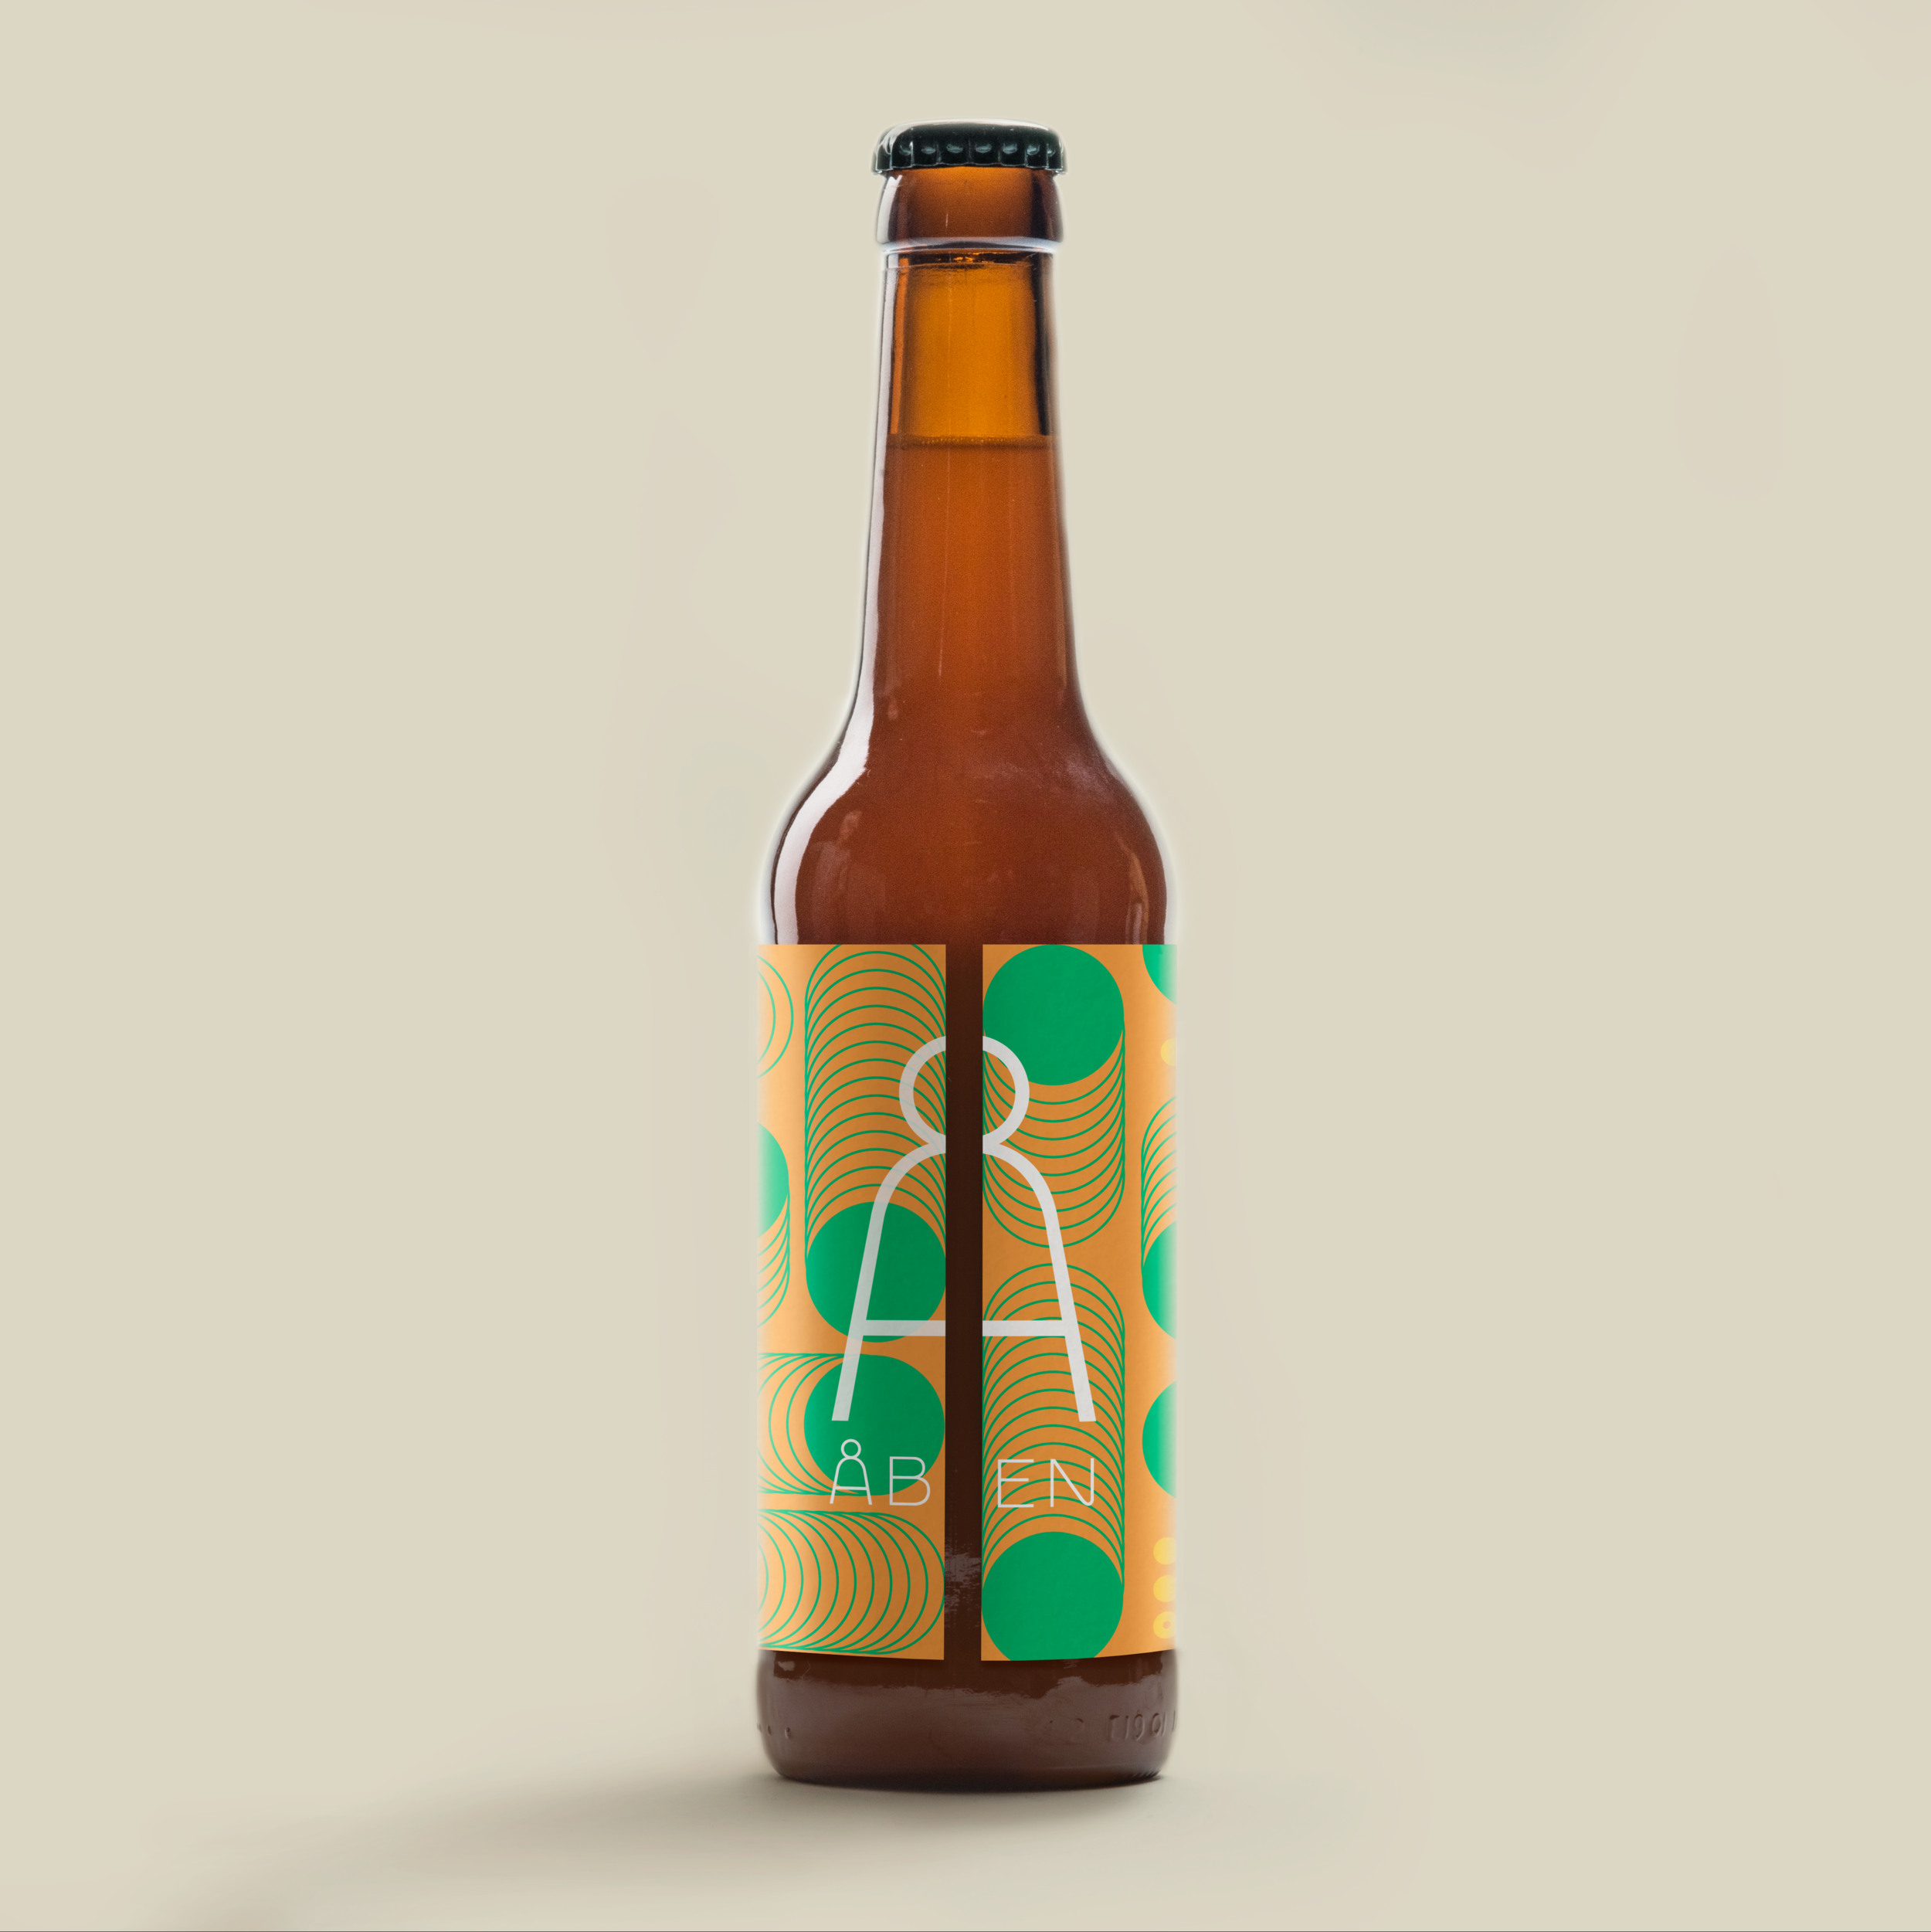 SUNDANCER - PINEAPPLE EDITION  / Oat Cream IPA / 8.1%  Regular Edition, 2019   Heavily hopped and full-bodied Oat Cream IPA, brigth as the summer sun, and hazy as mango juice. With Pinapple.